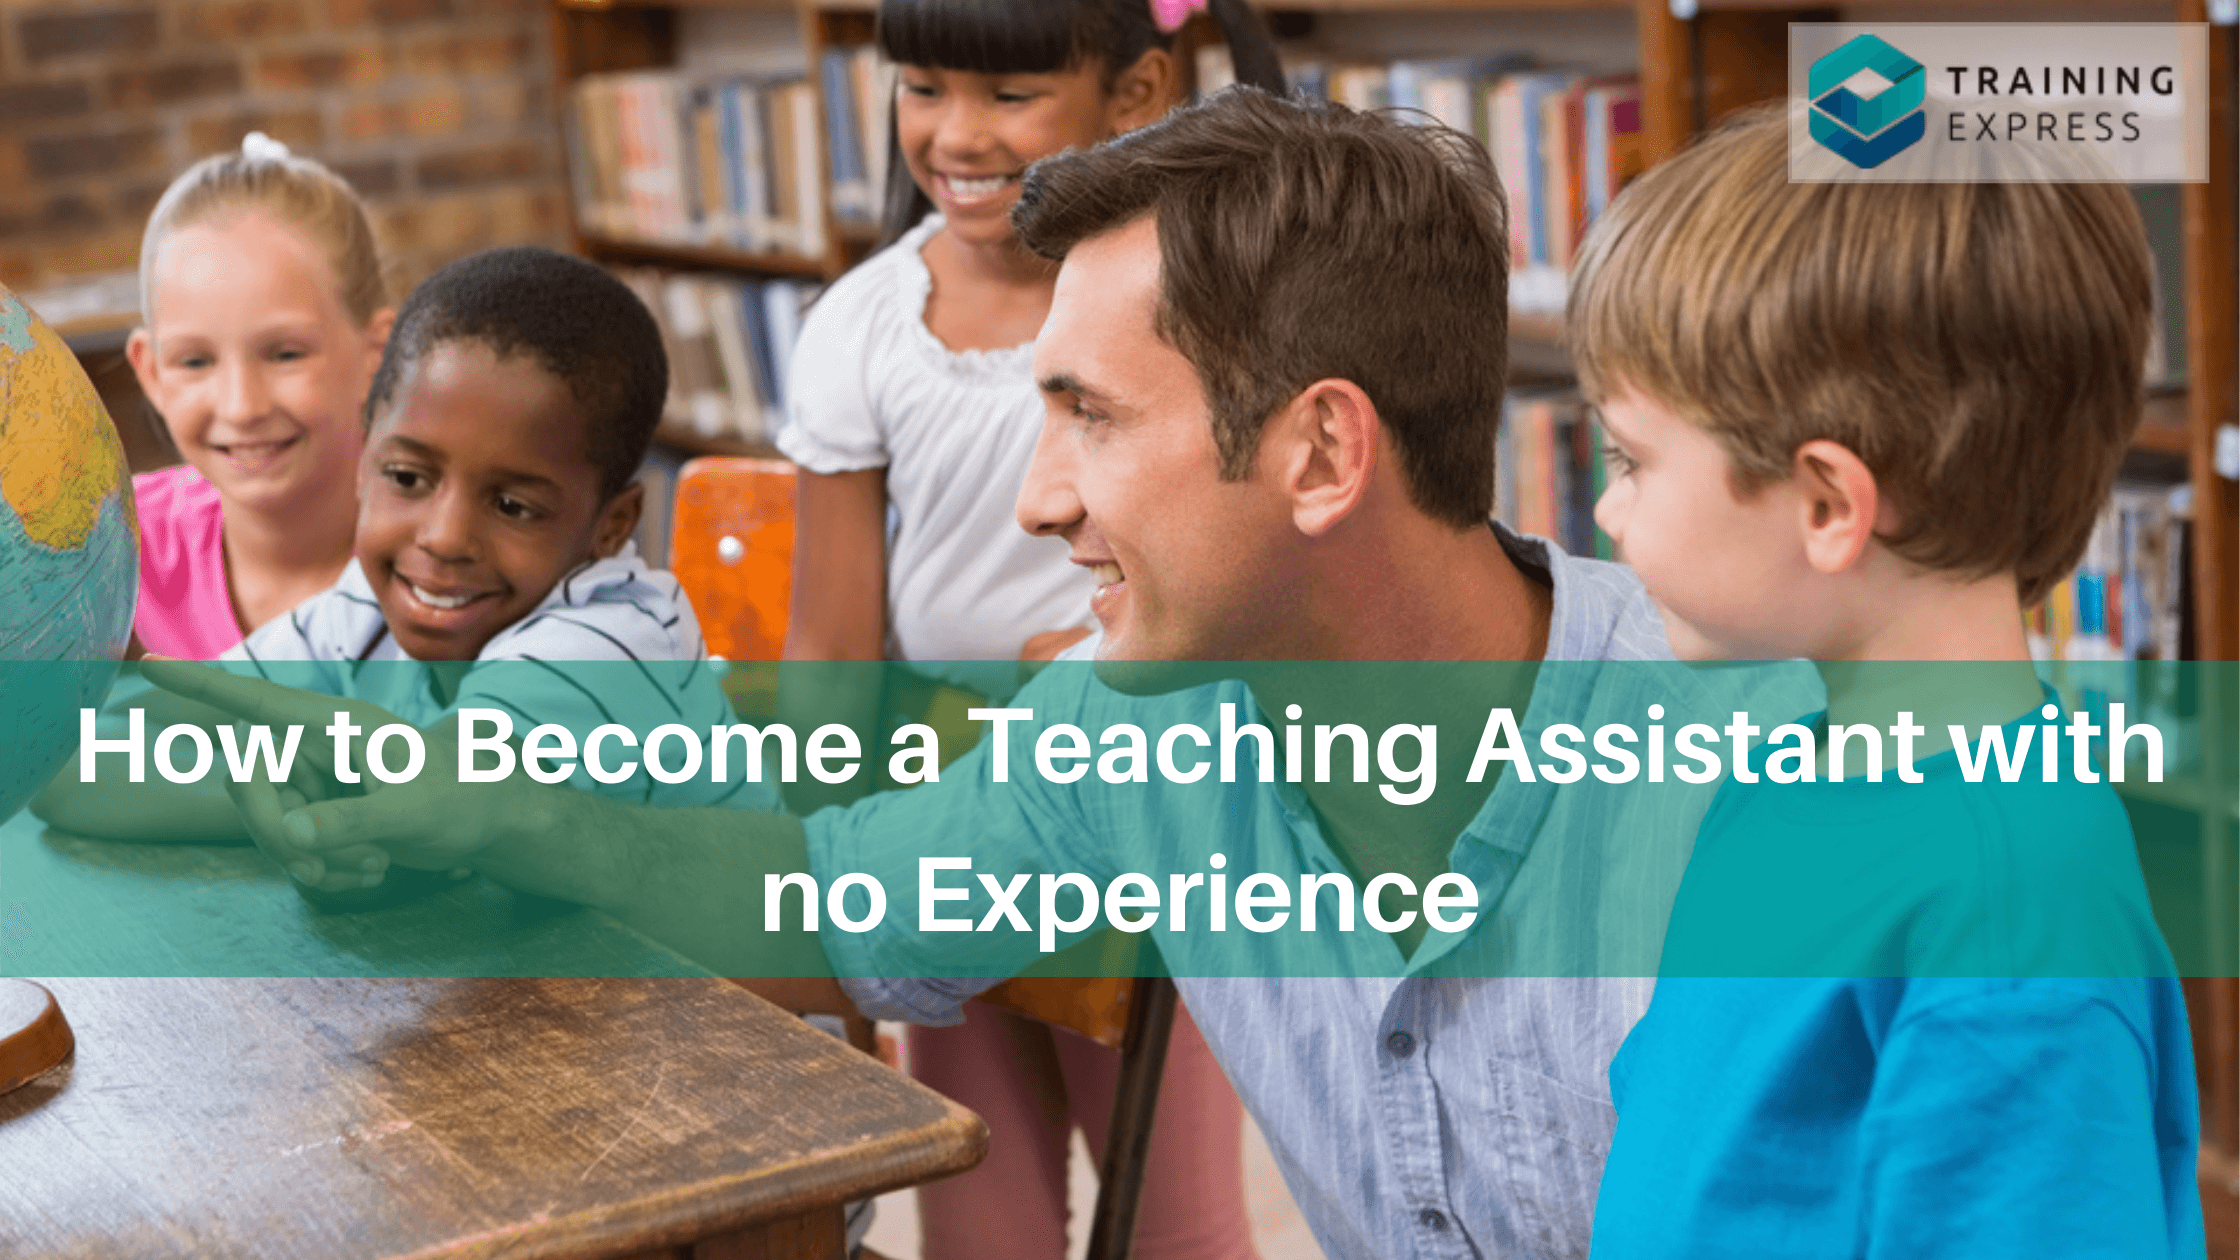 How to Become a Teaching Assistant with no Experience